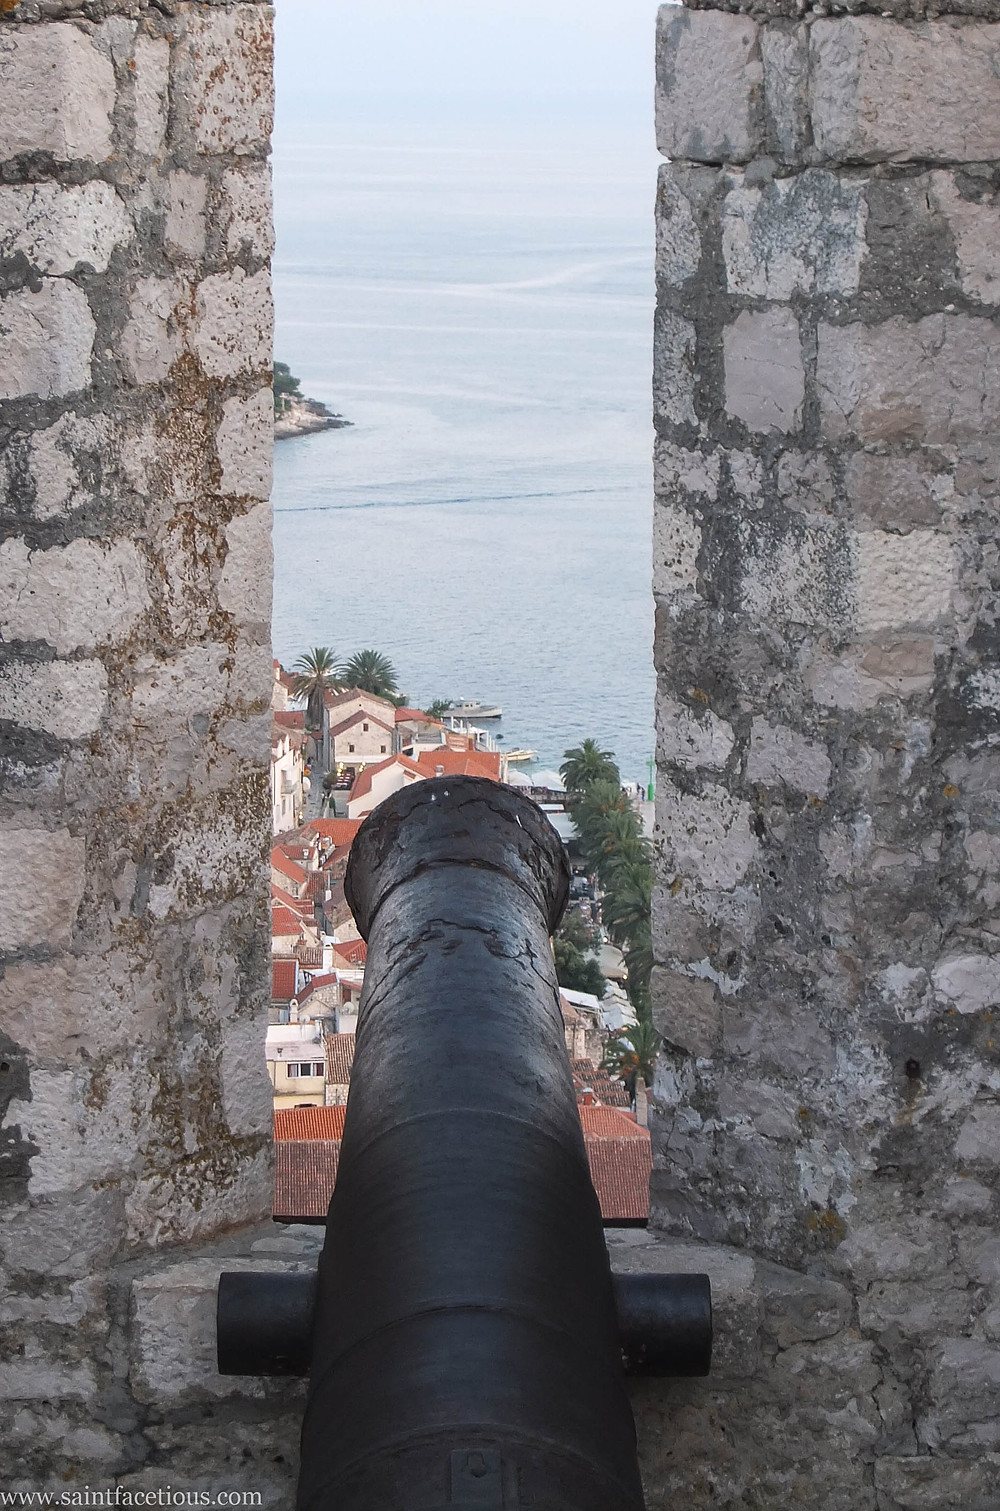 Cannons. The Dalmatian coast is the most beautiful in the world. Hvar is the place to go for the partying and with a majestic castle view. Read the blog for more.